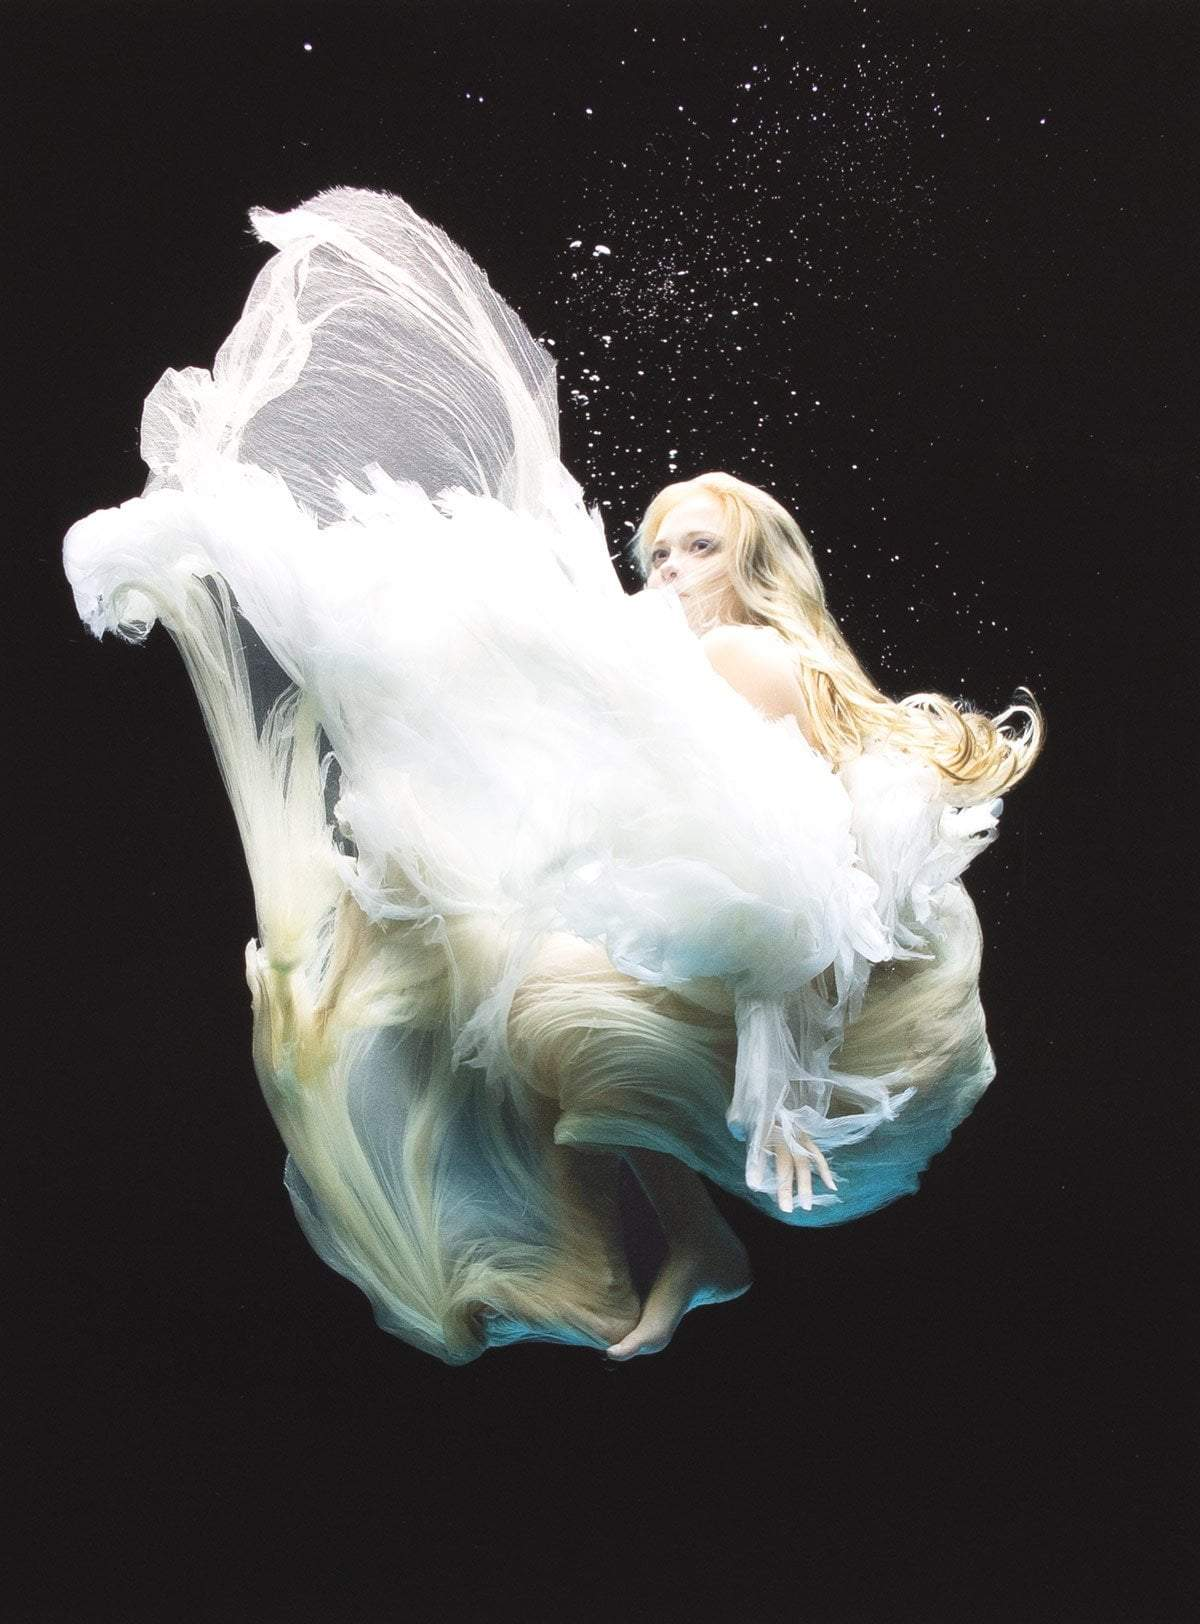 Angel 4 - Edition Zena Holloway